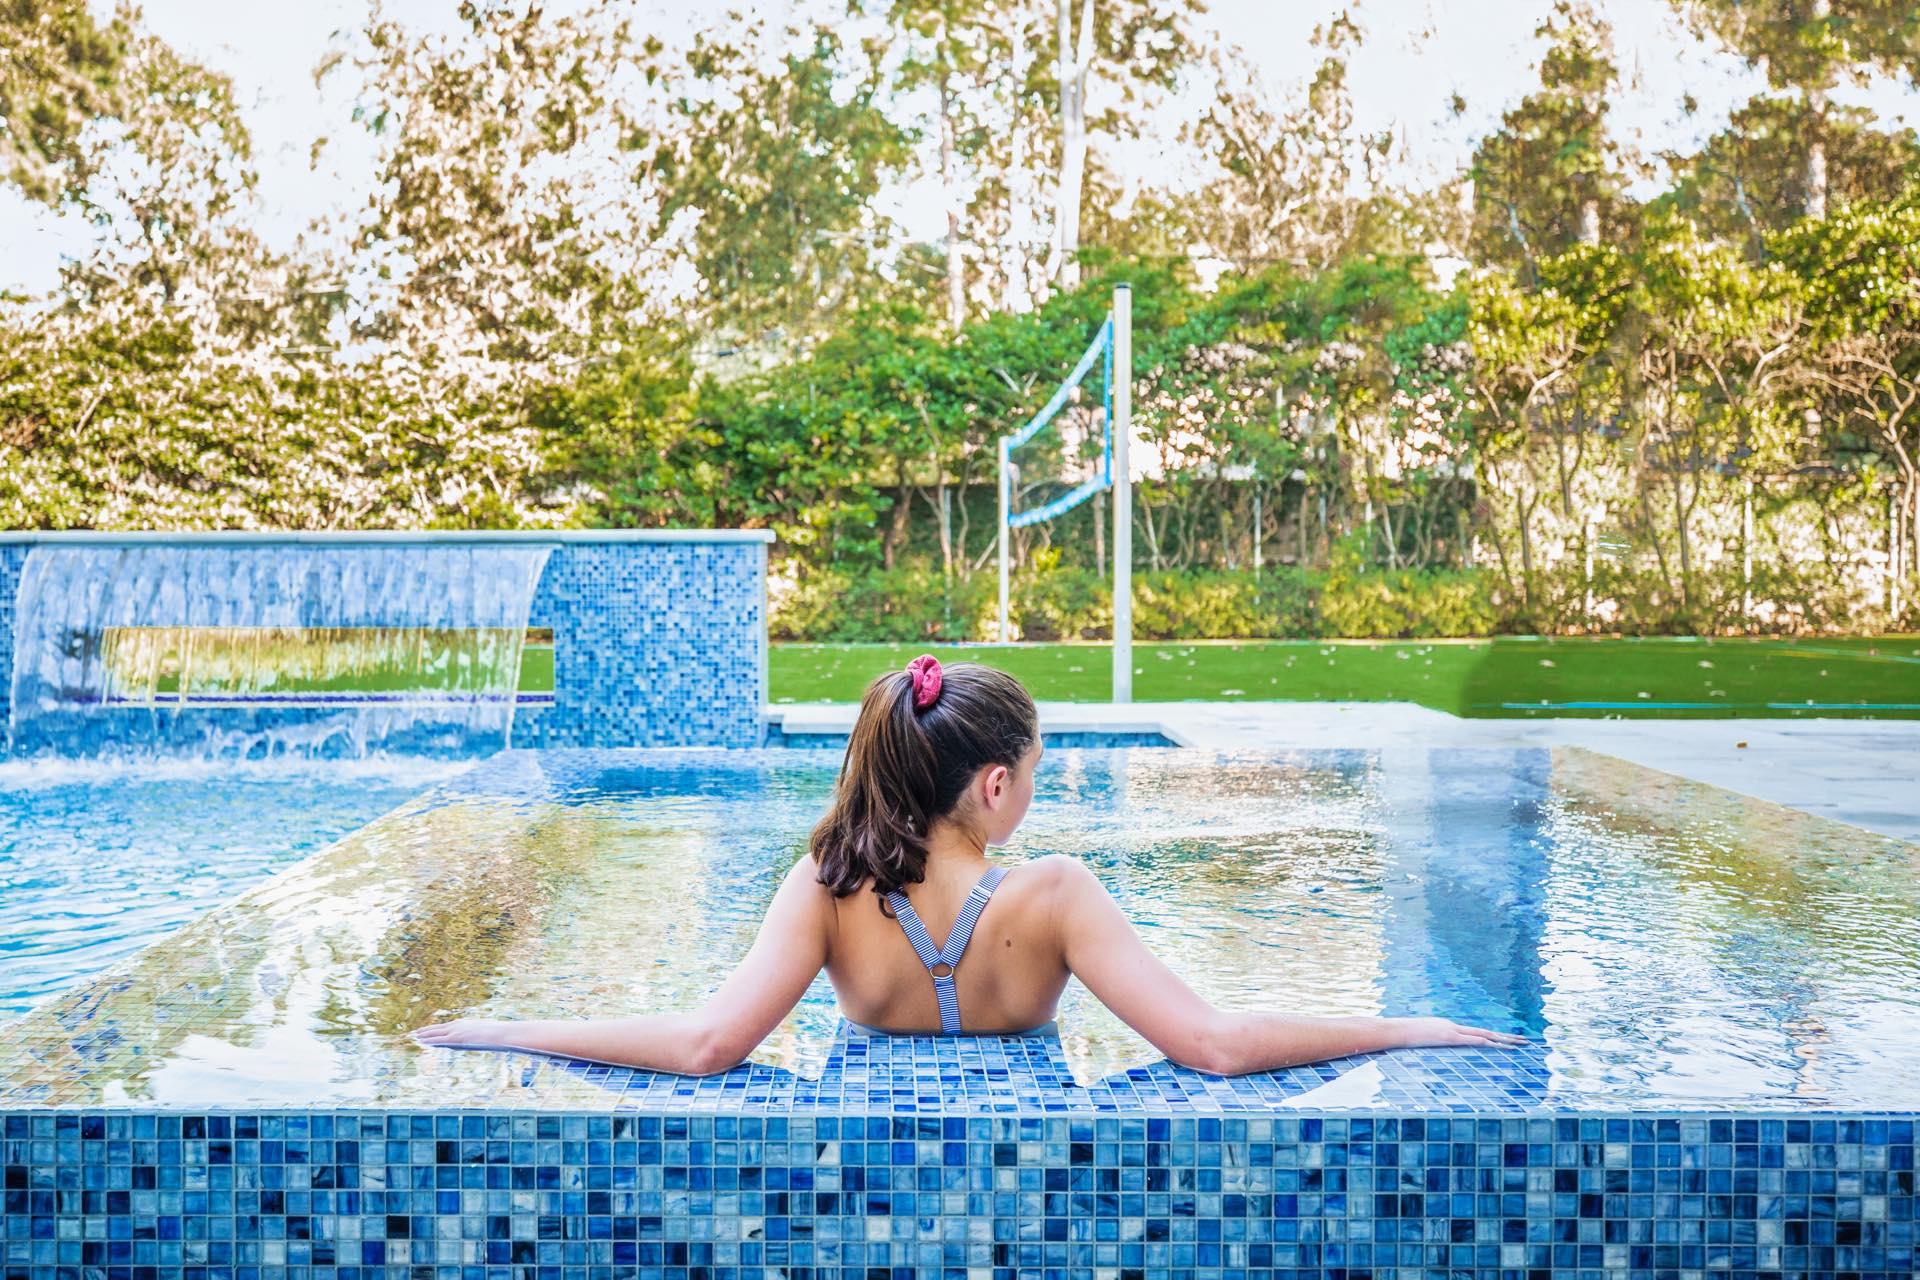 A girl relaxes in an Avea pool.